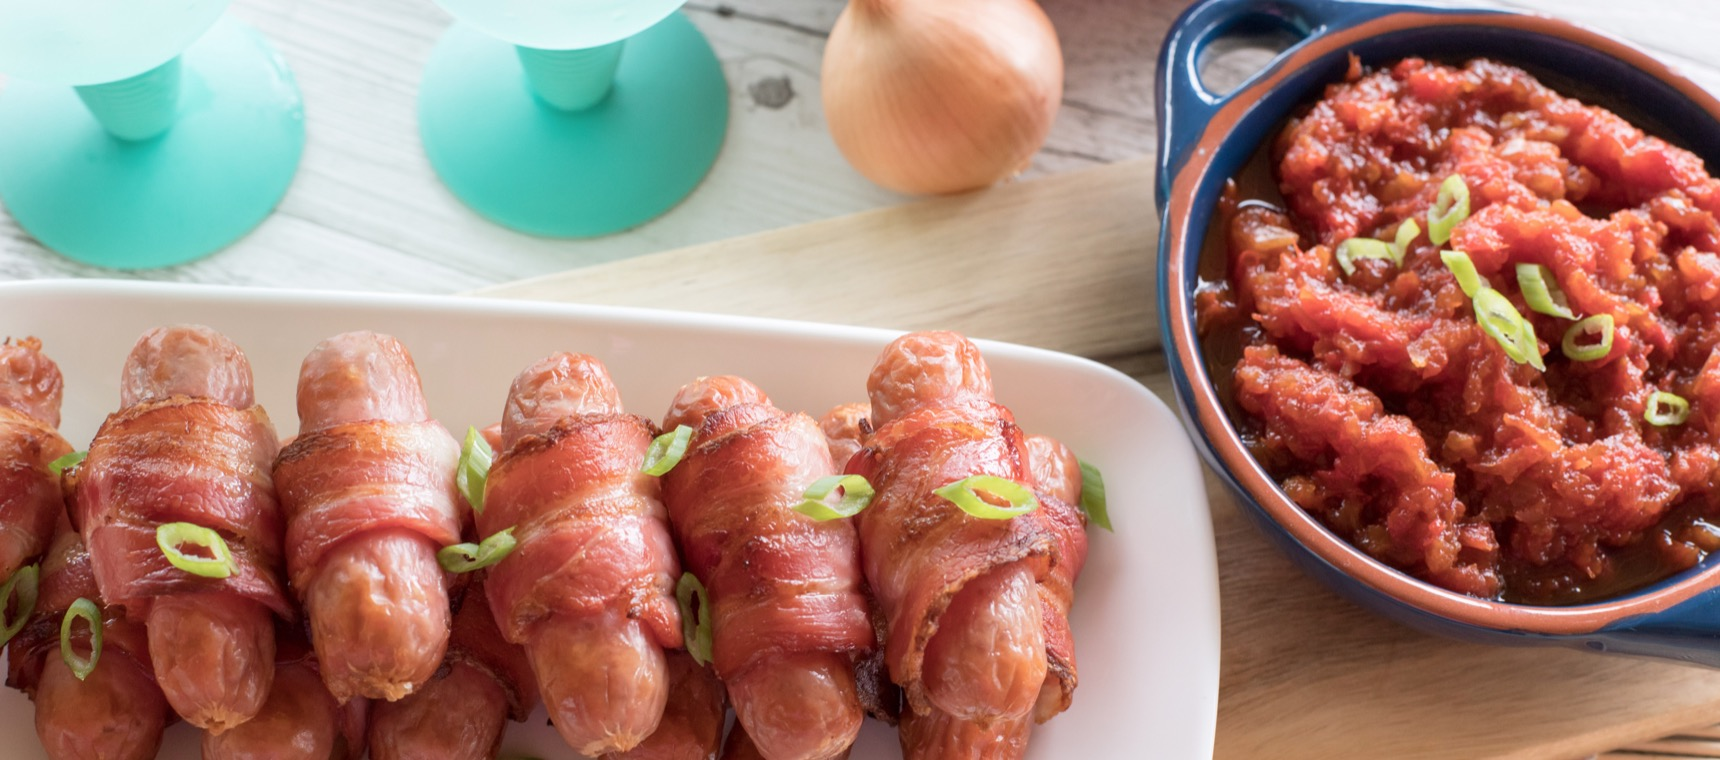 Bacon Wrapped Sausages with Dipping Sauce